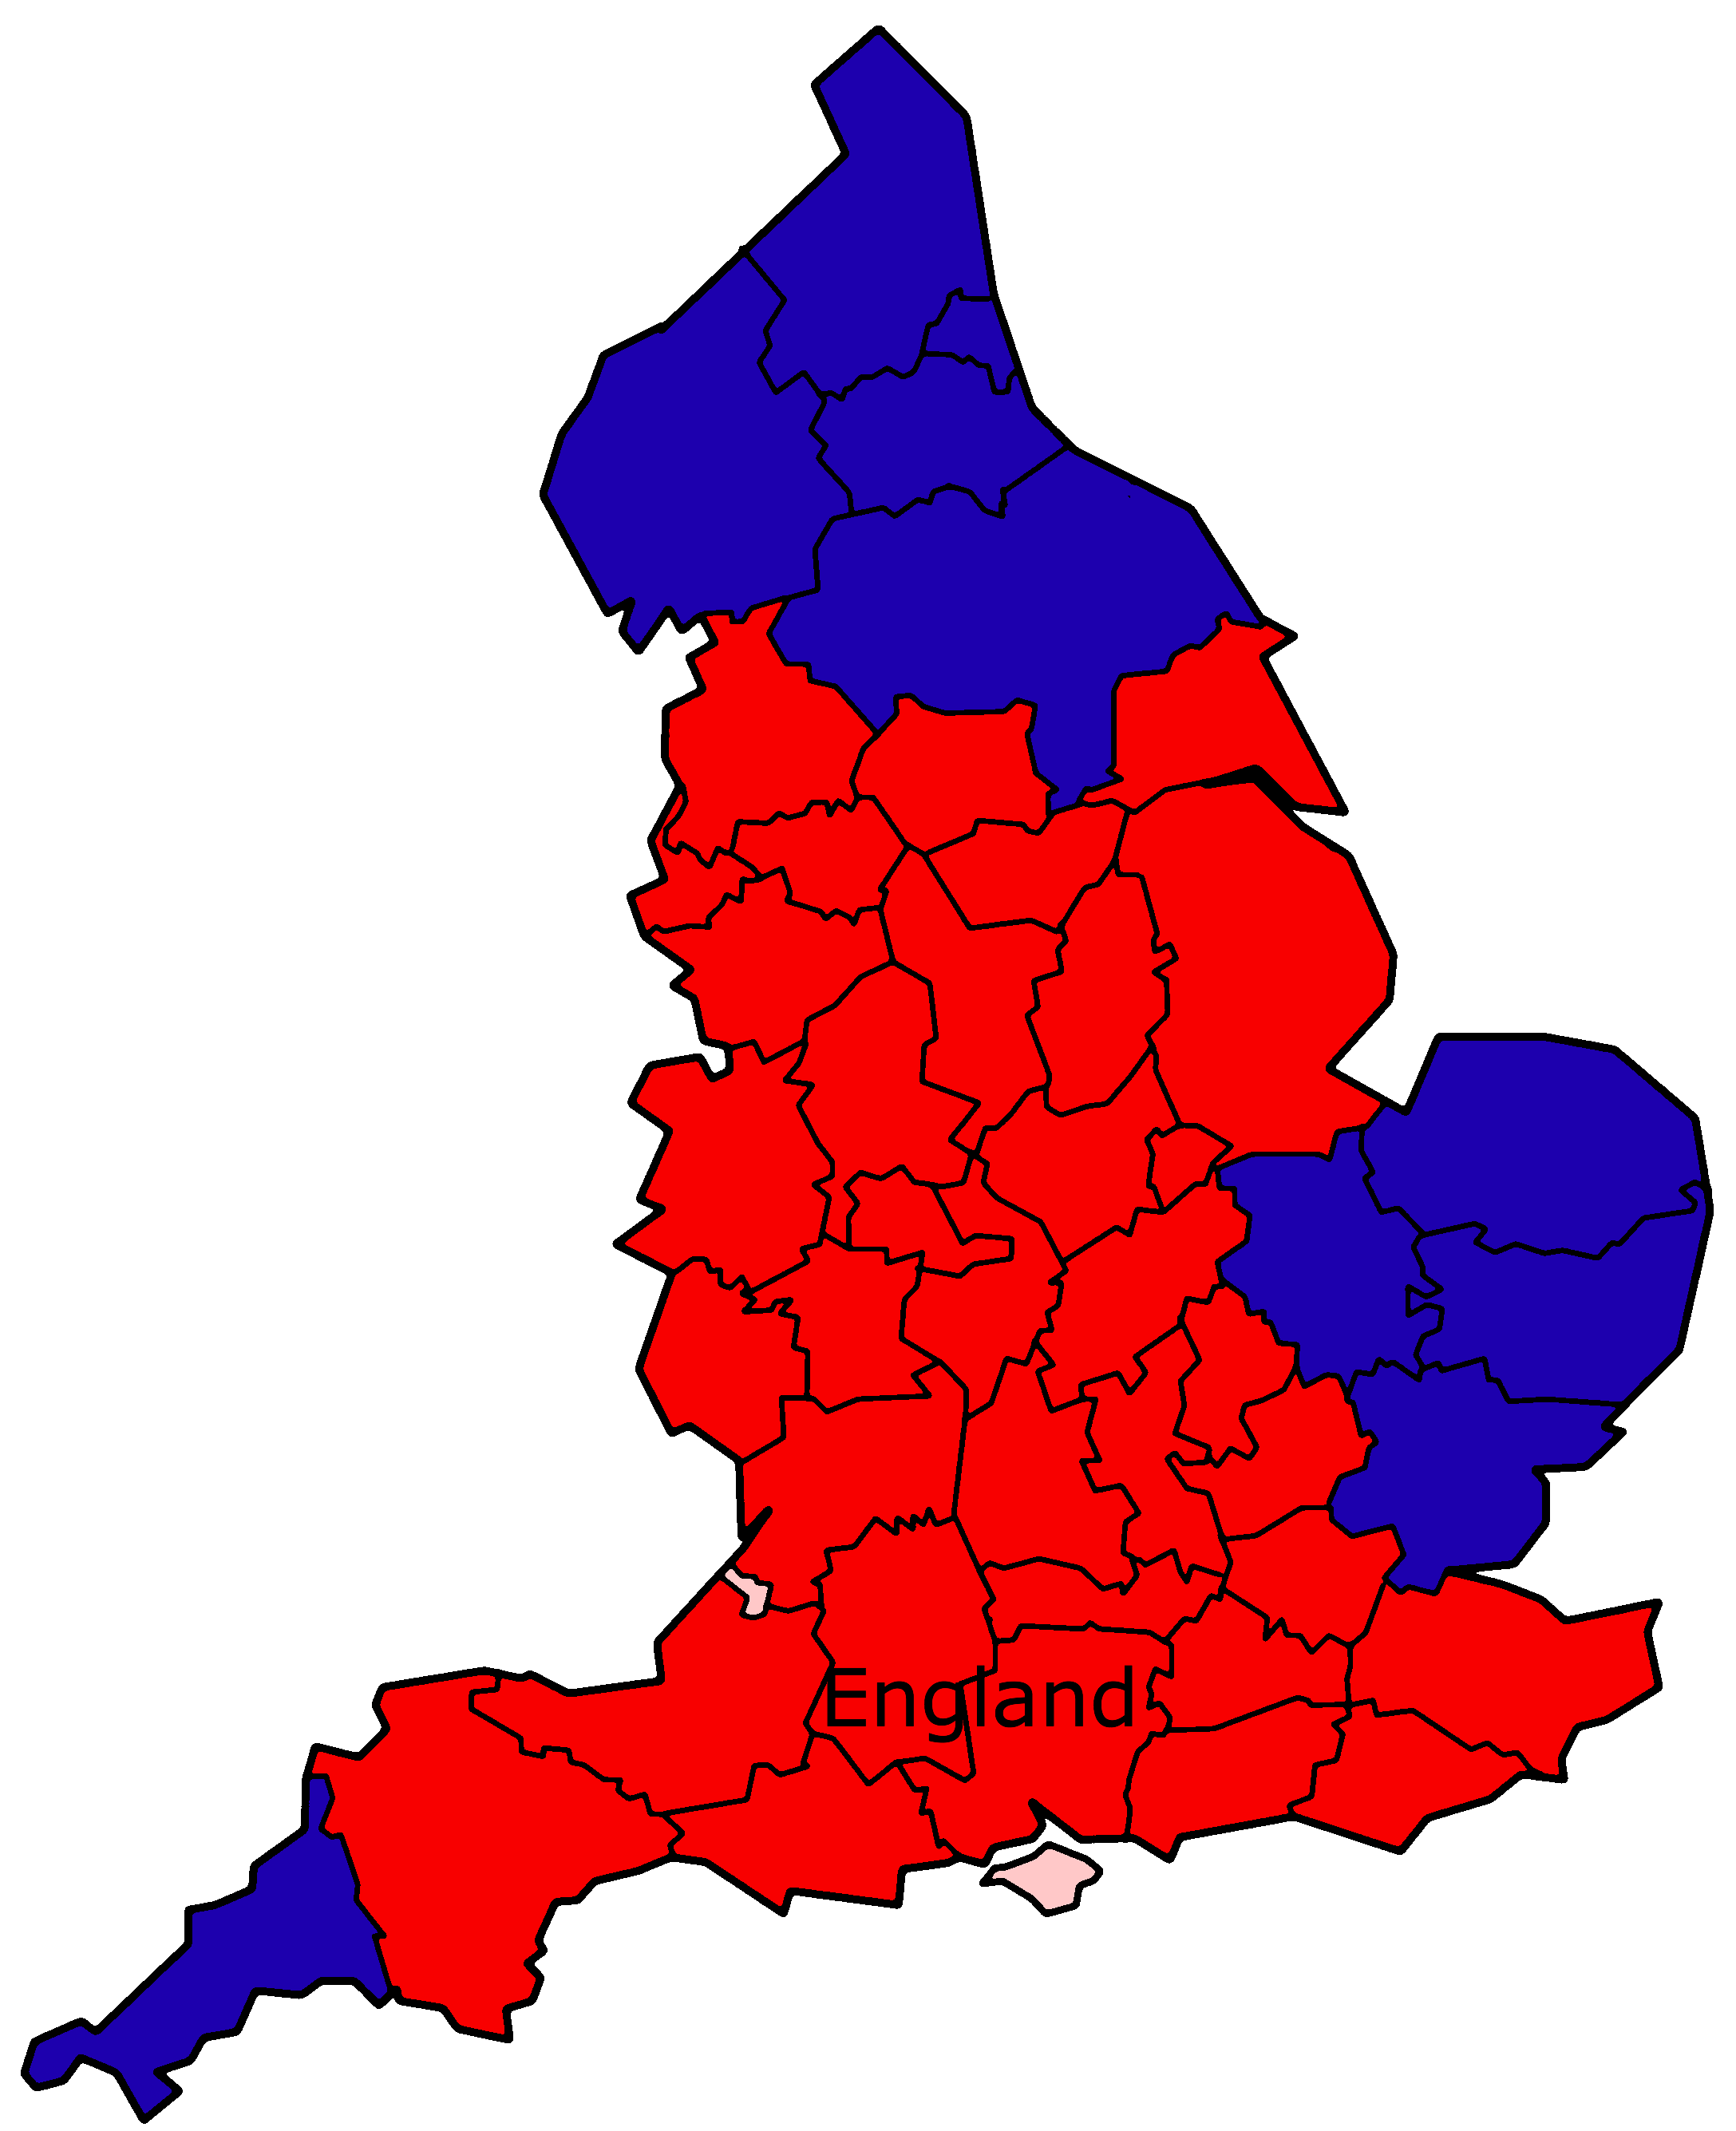 England (A Different History)